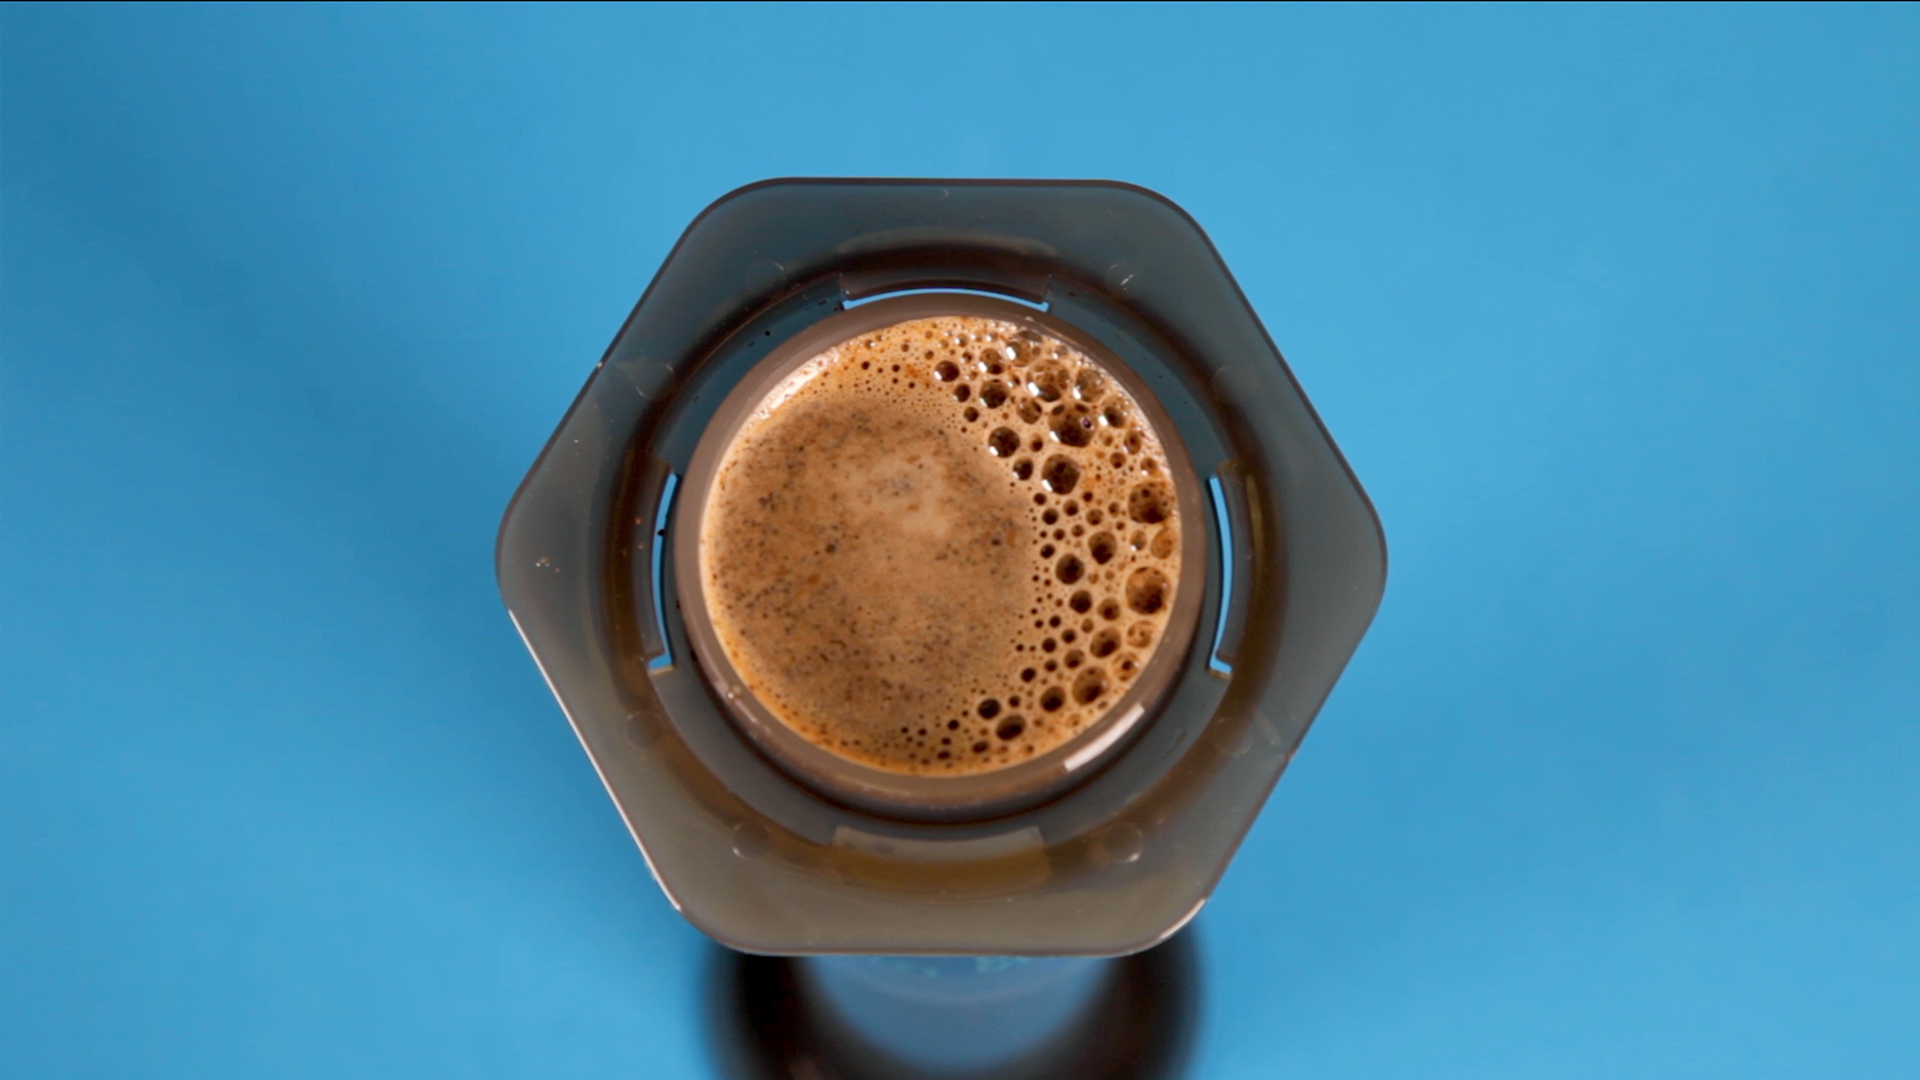 leave the coffee to brew